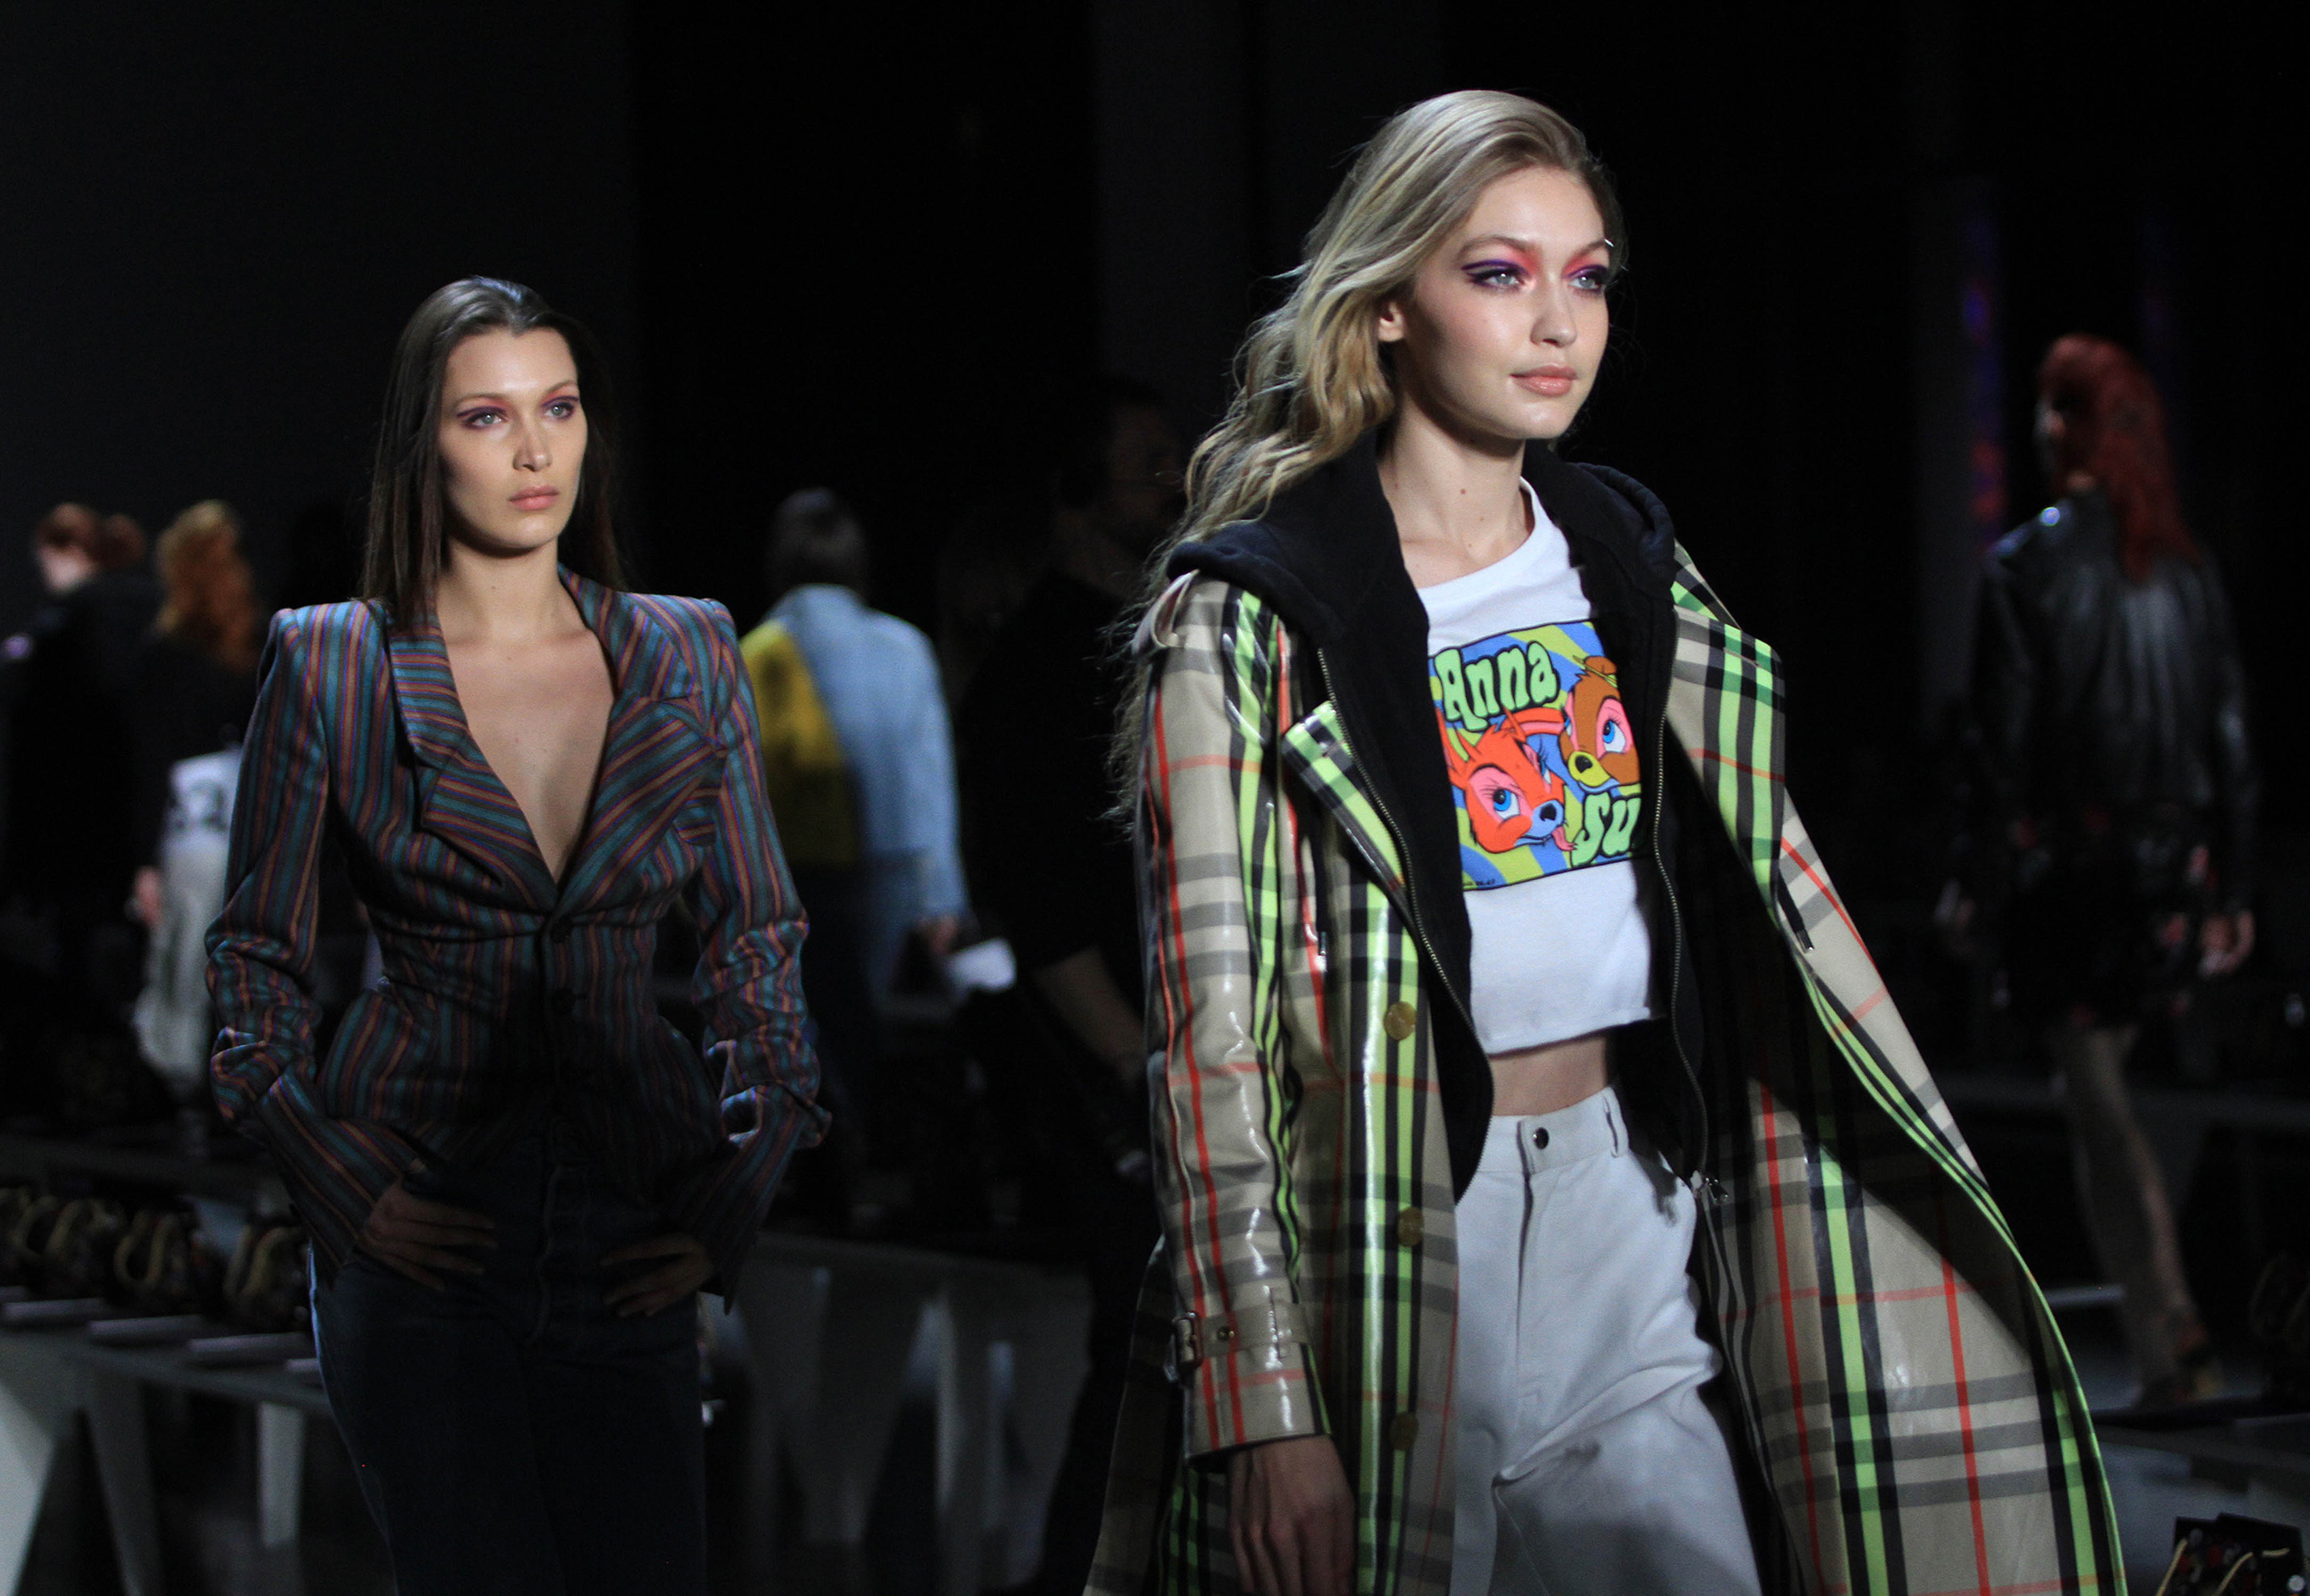 Photo by: Raoul Gatchalian/STAR MAX/IPx 2017 2/12/18 Bella Hadid and Gigi Hadid at rehearsals for The Anna Sui Fashion Show - Fall/Winter 2018 Collection in New York City.